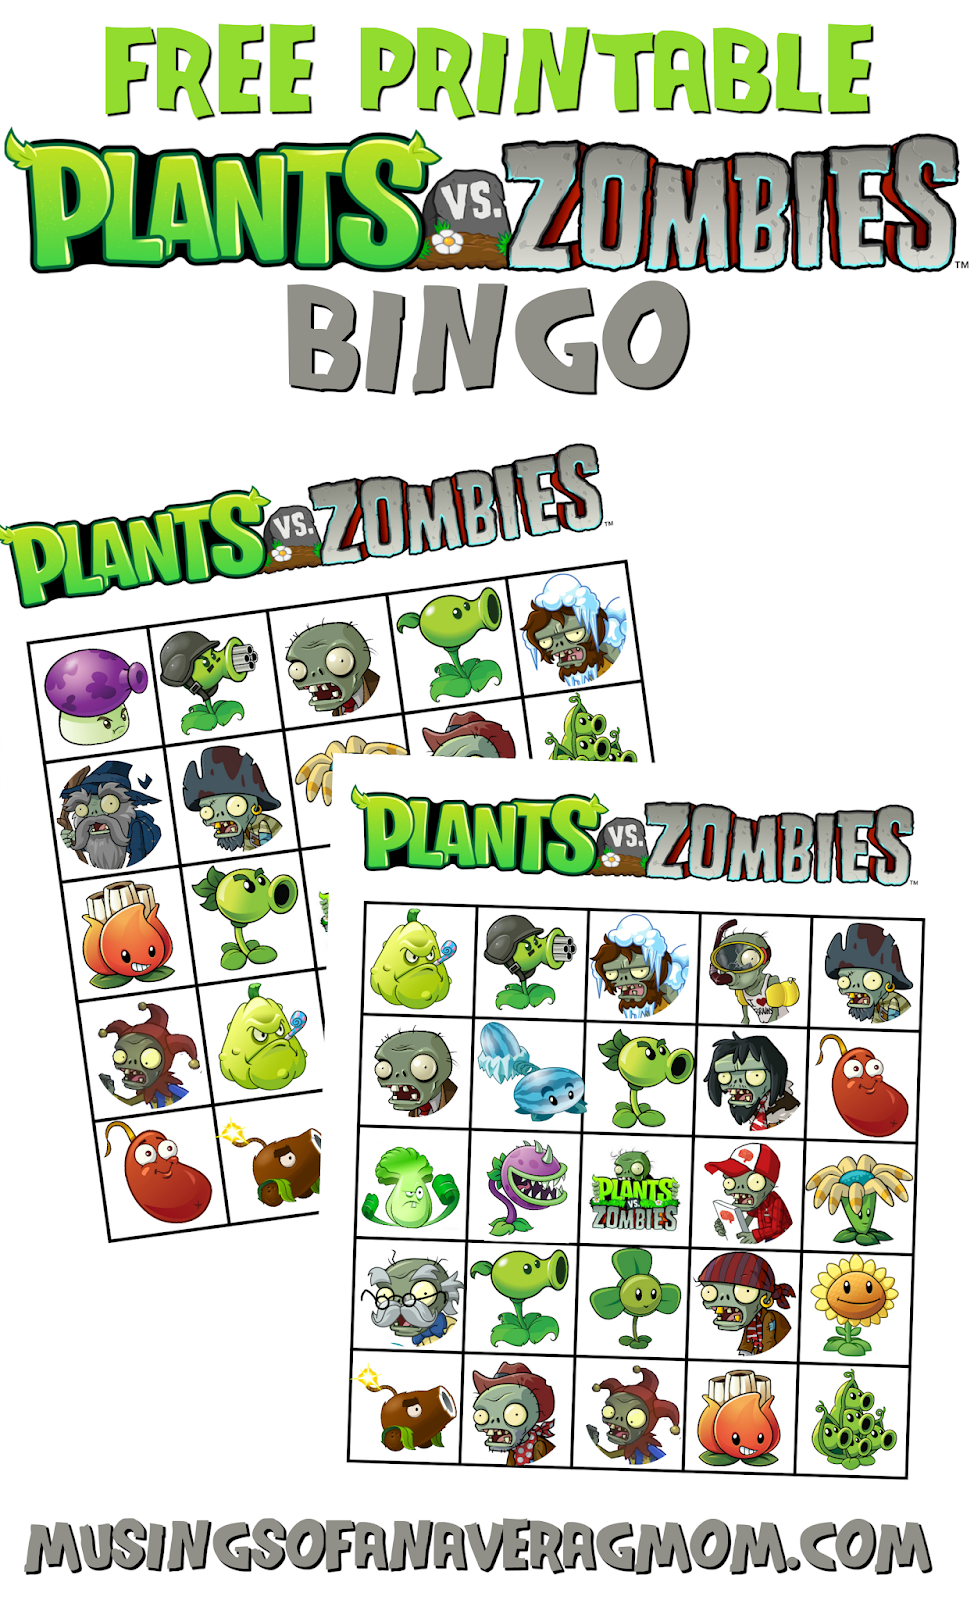 40 Best Plants Vs Zombies Crochet images | Plants vs zombies ... | 1600x974